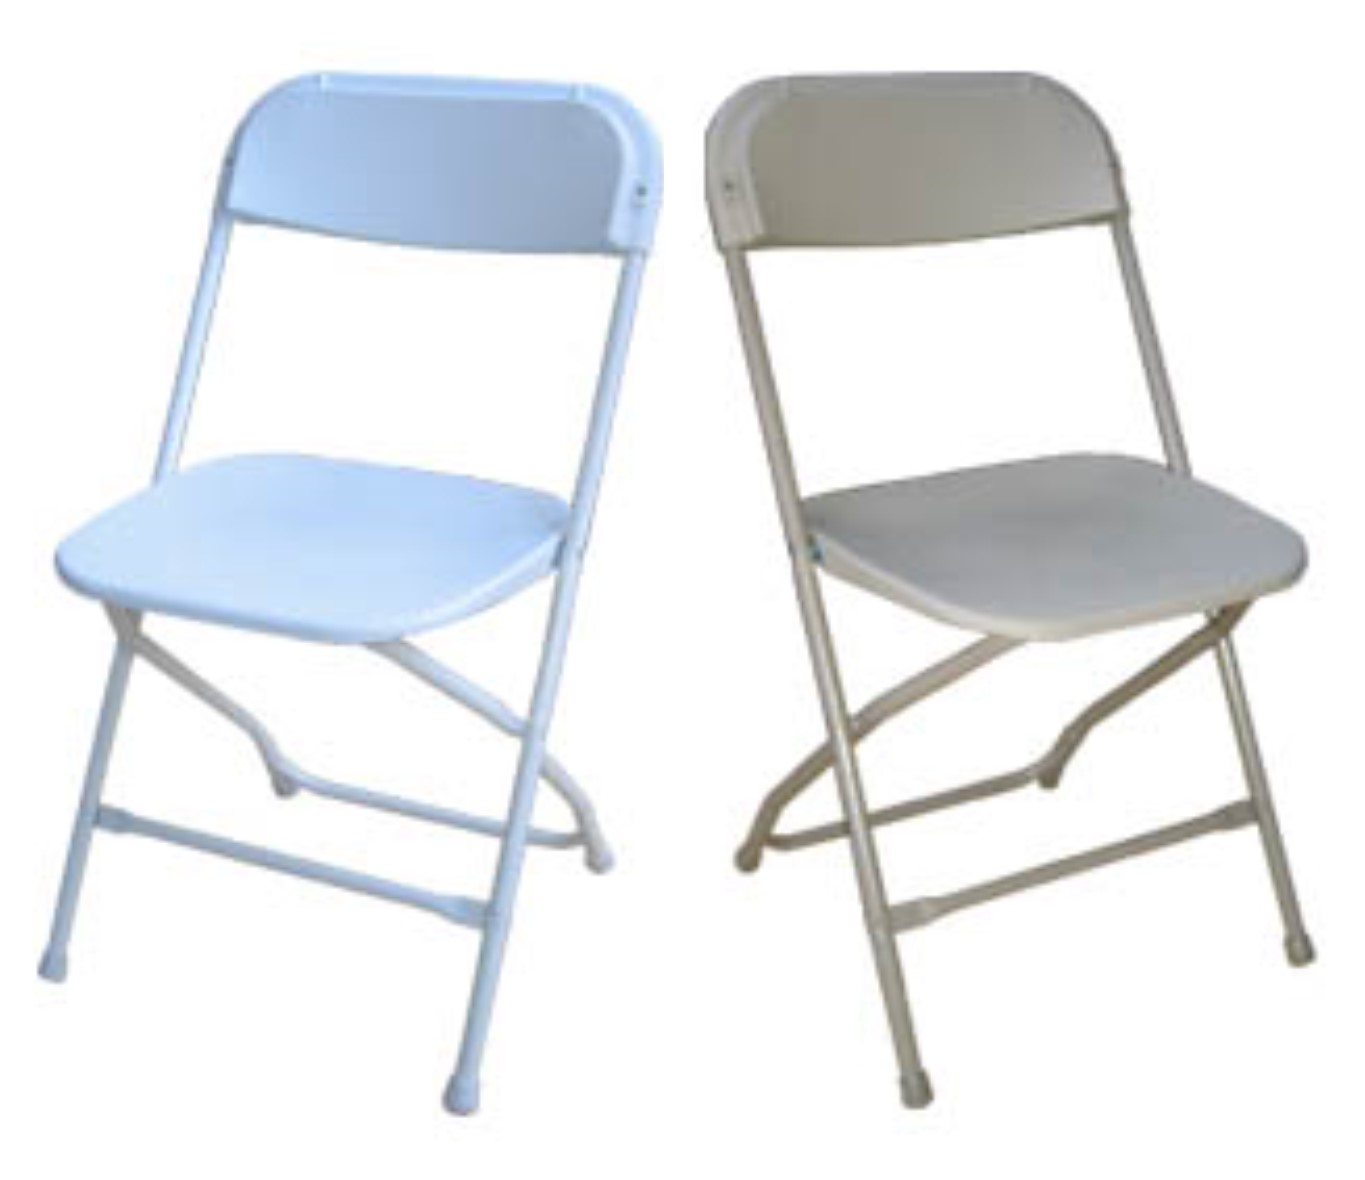 Chairs  Plastic Folding Chairs  AV Party Rental